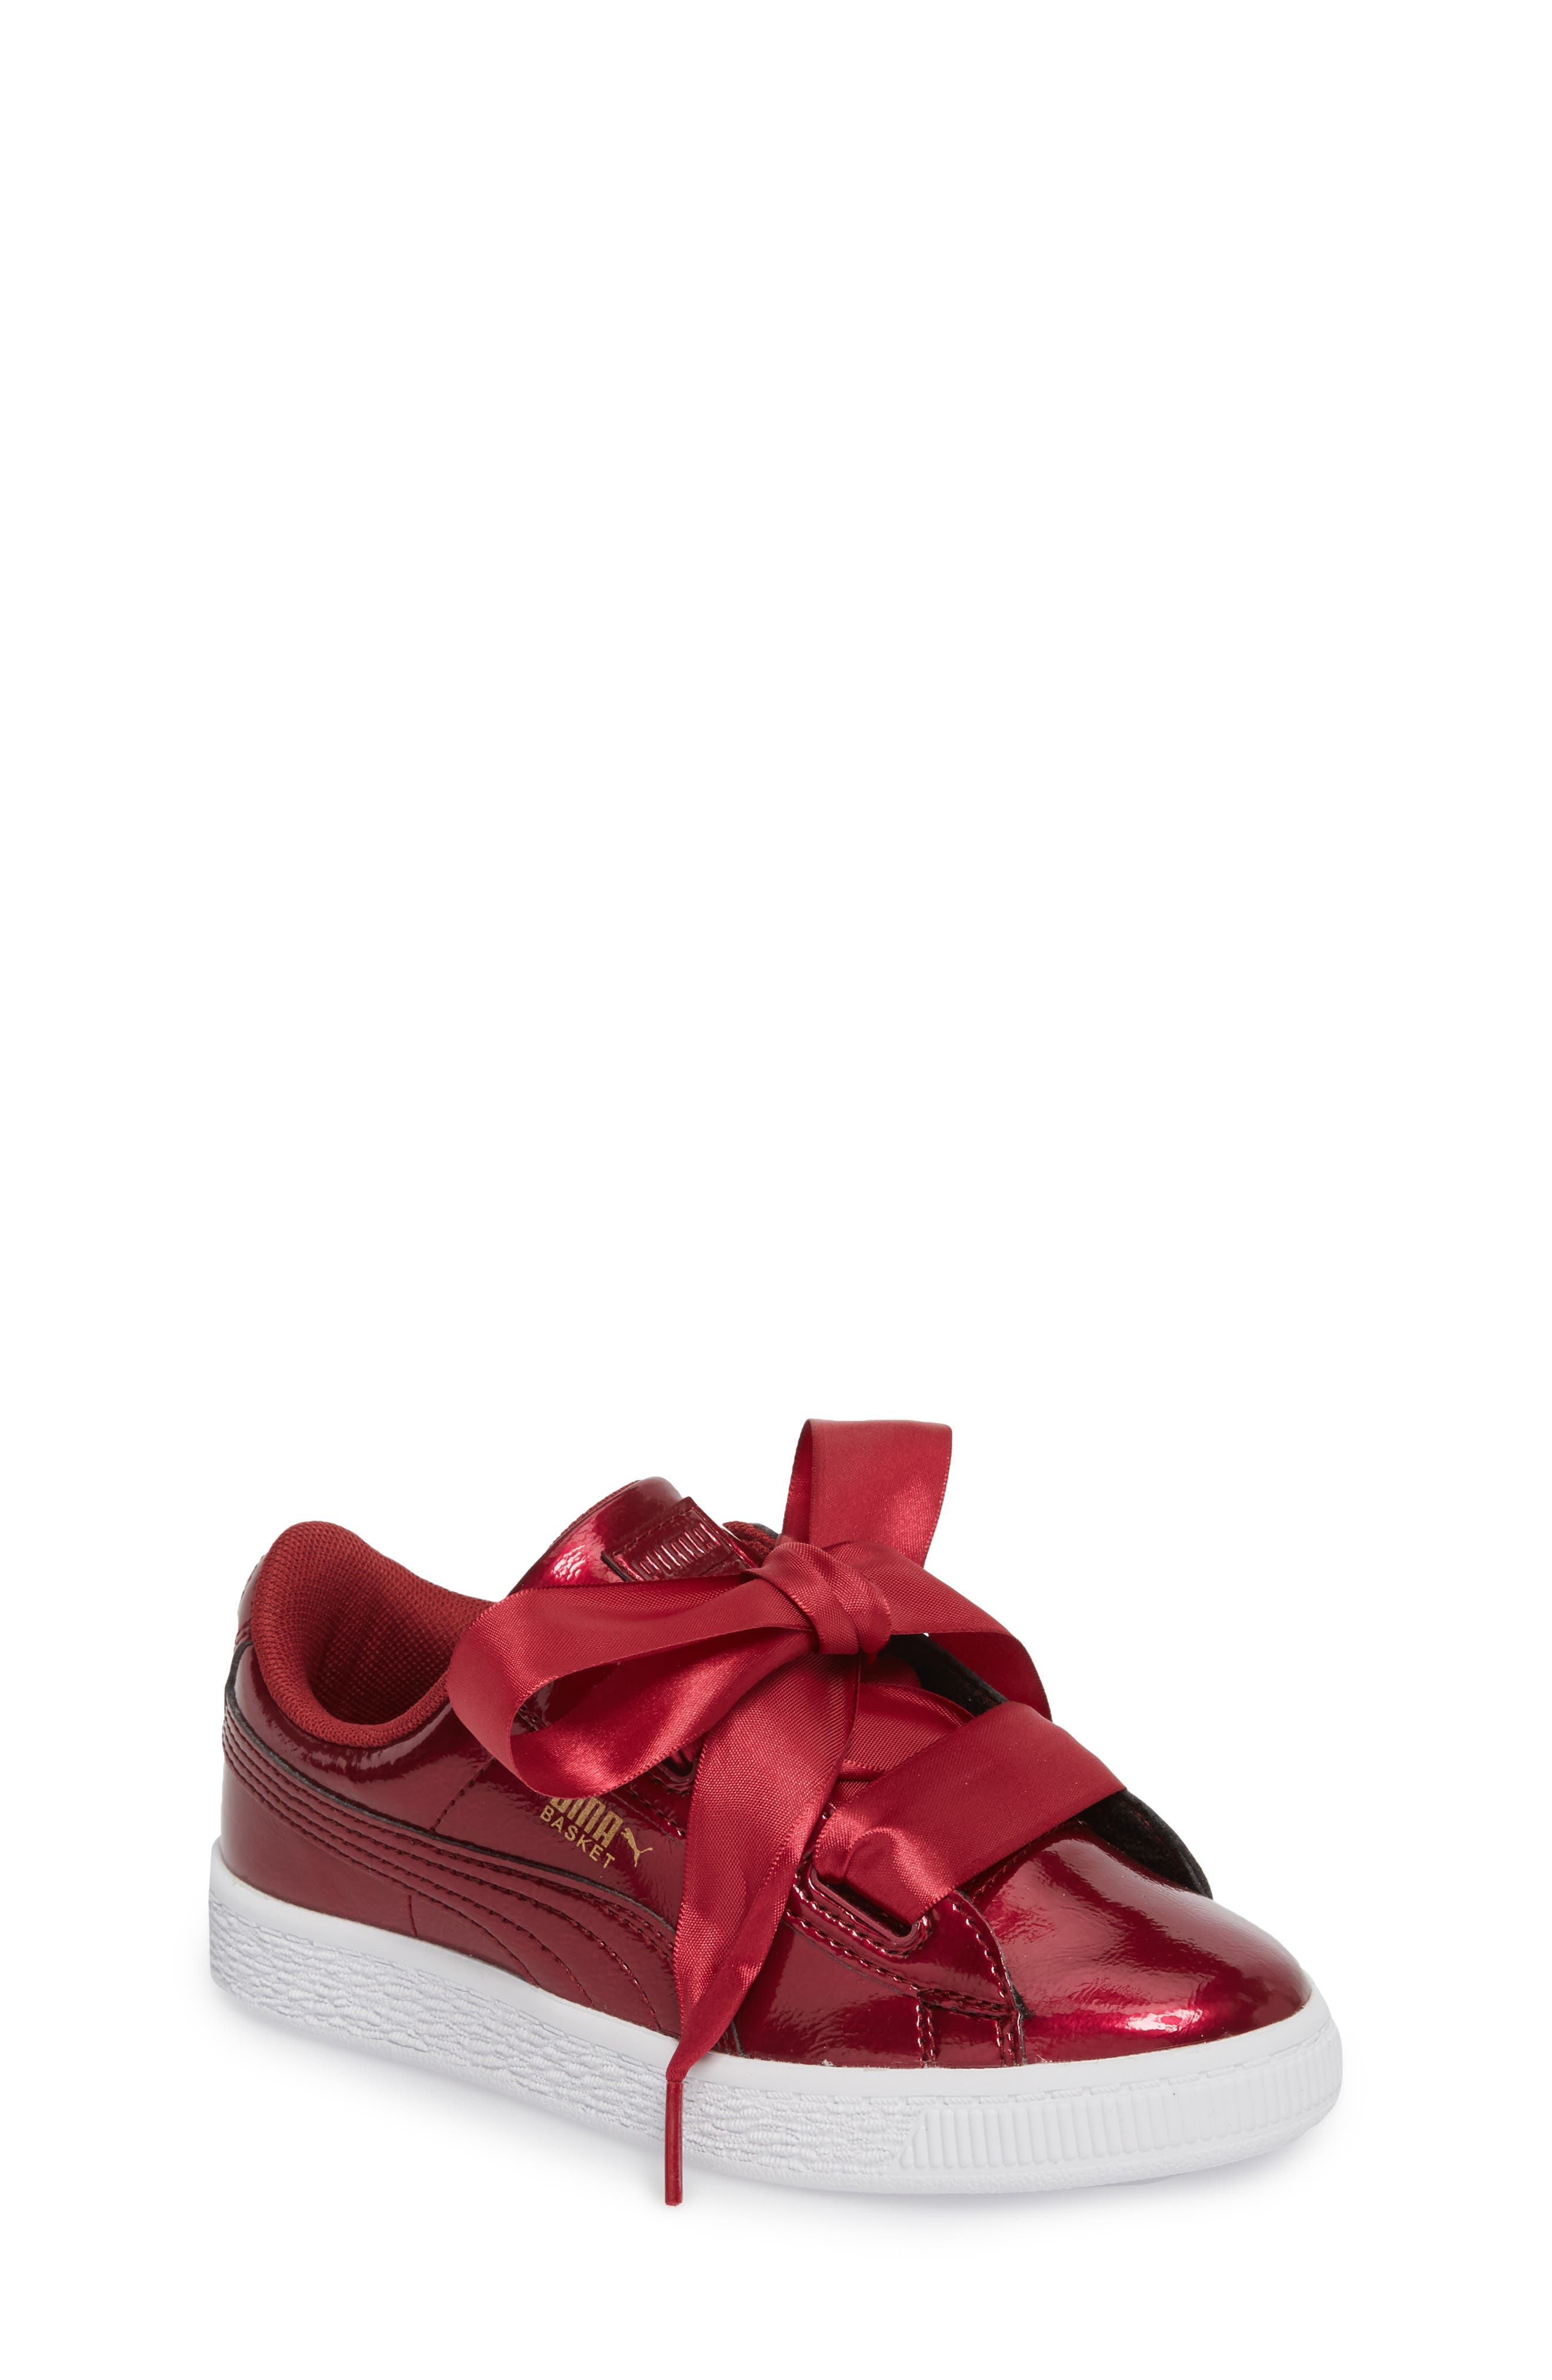 Alternate Image 1 Selected - PUMA Basket Heart Glam Sneaker (Baby, Walker, Toddler, Little Kid & Big Kid)